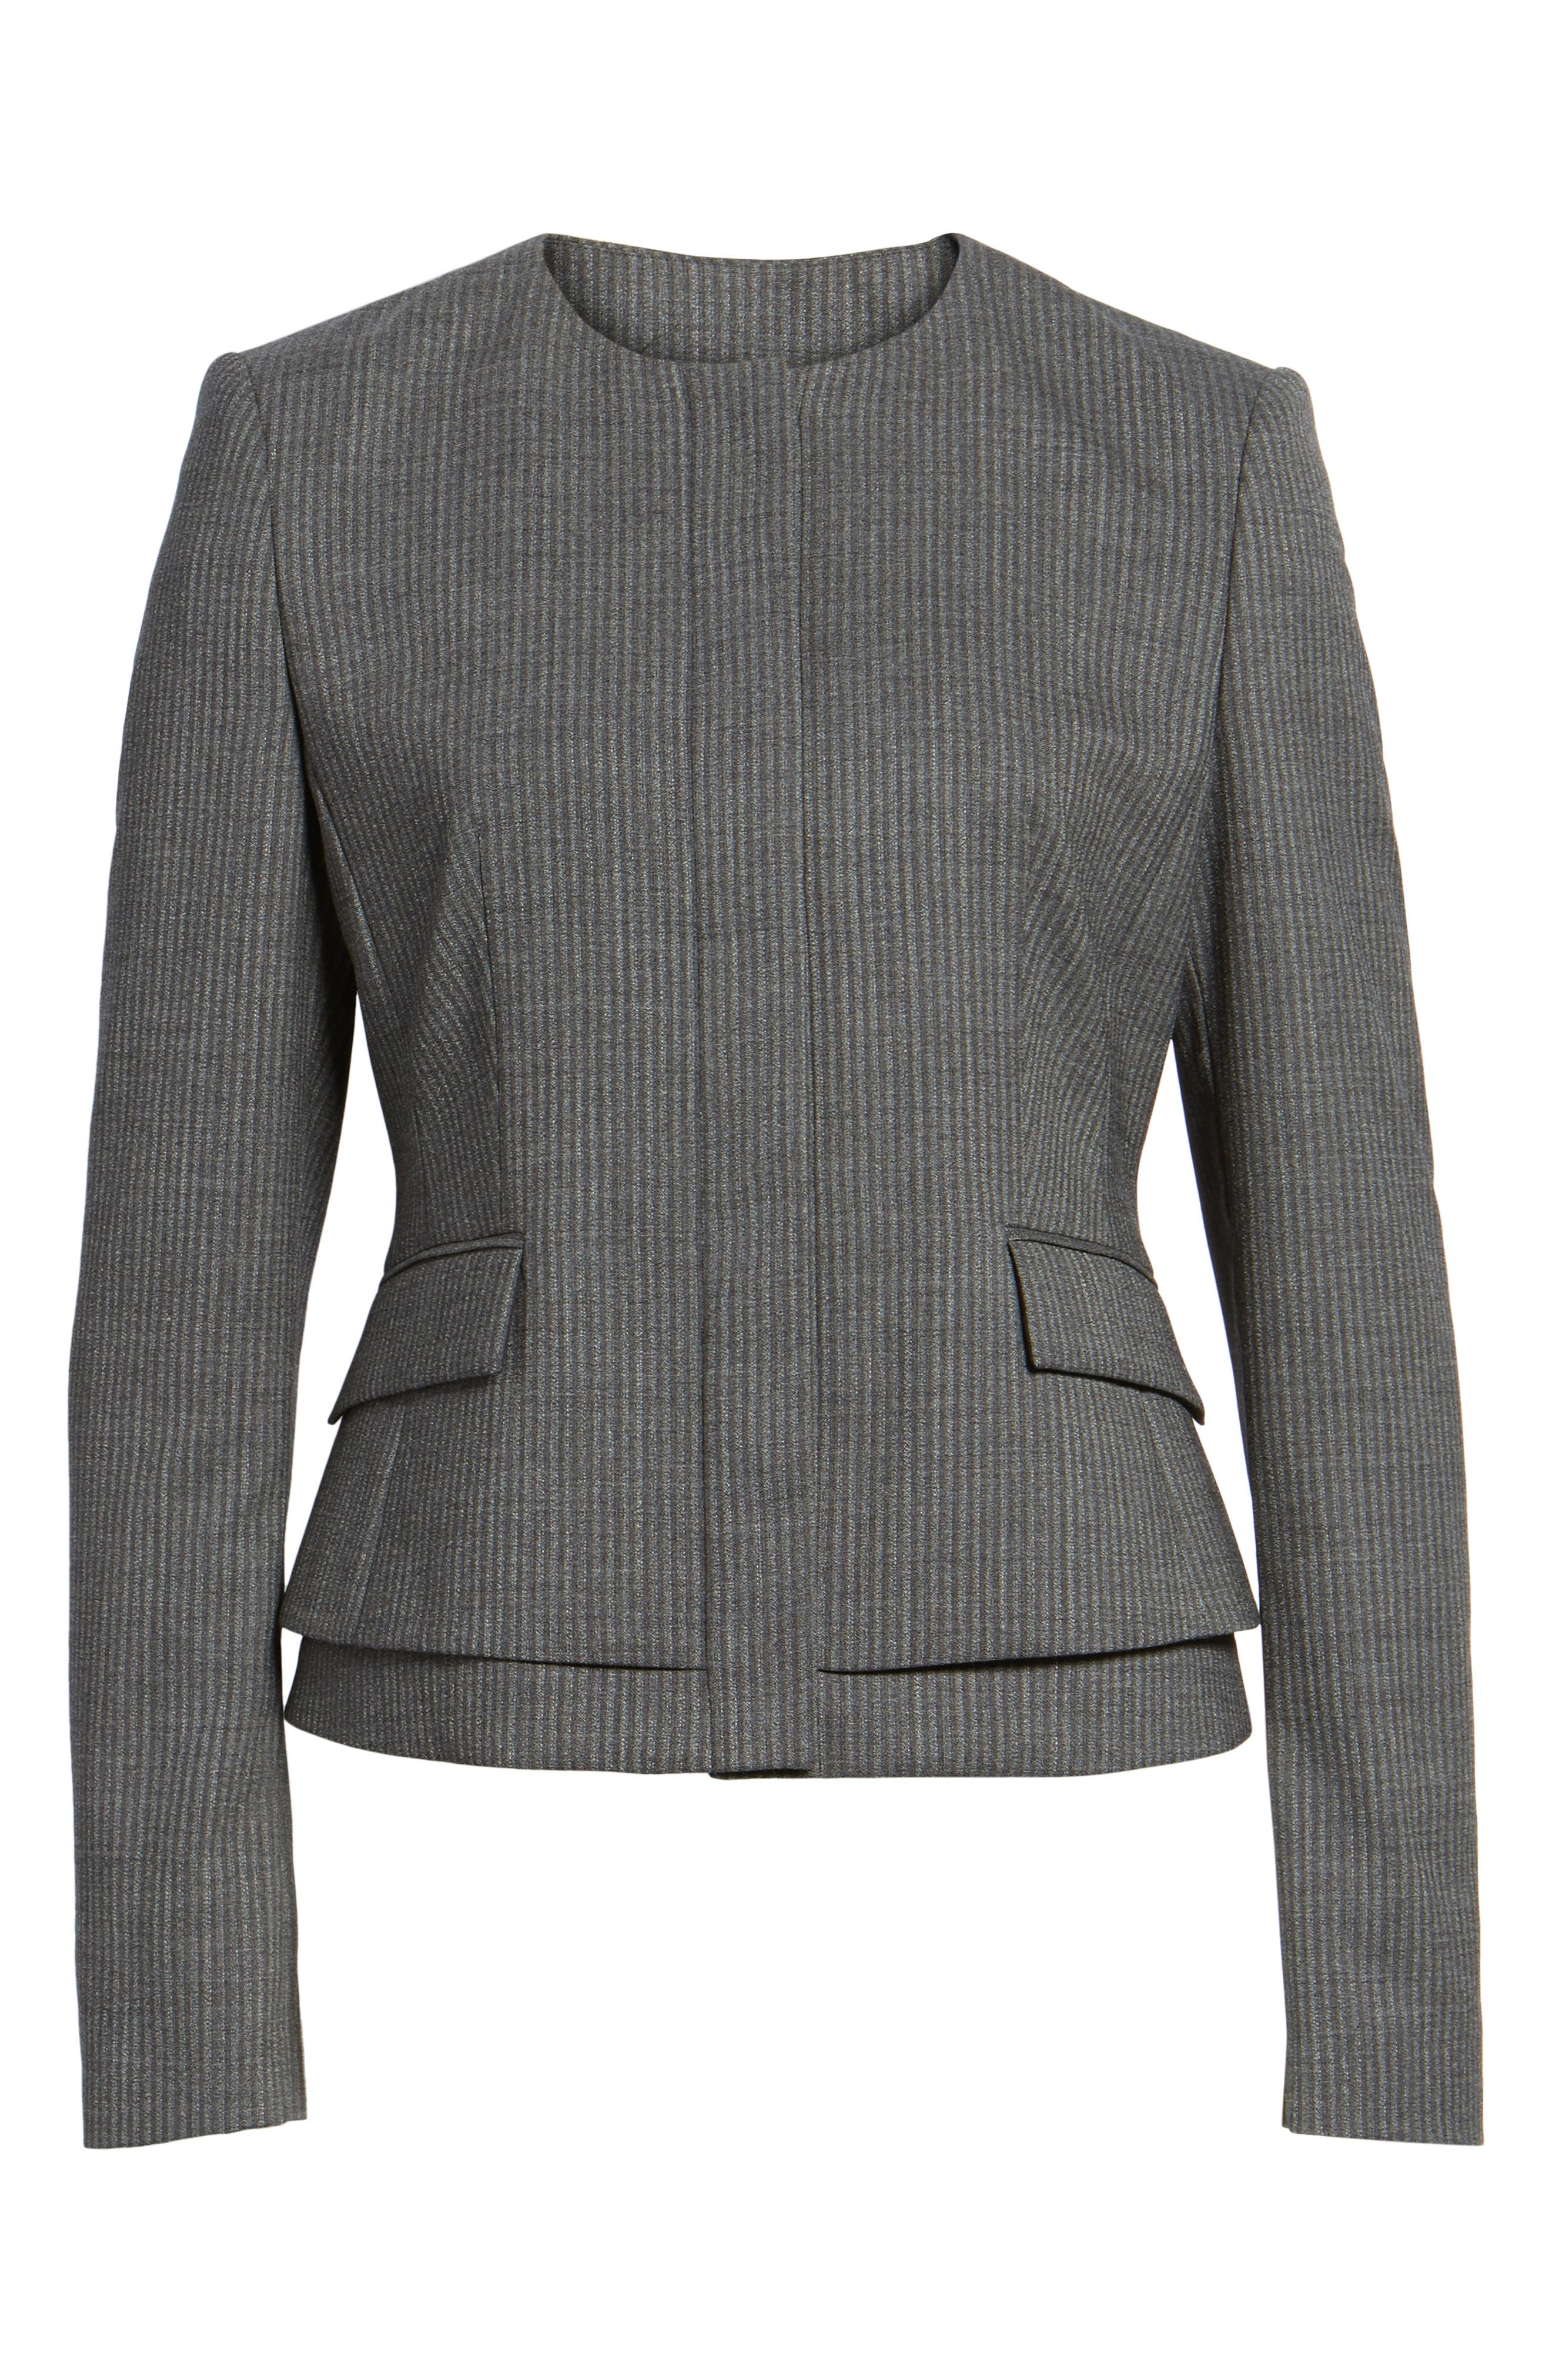 Jasyma Stripe Wool Suit Jacket,                             Alternate thumbnail 5, color,                             070